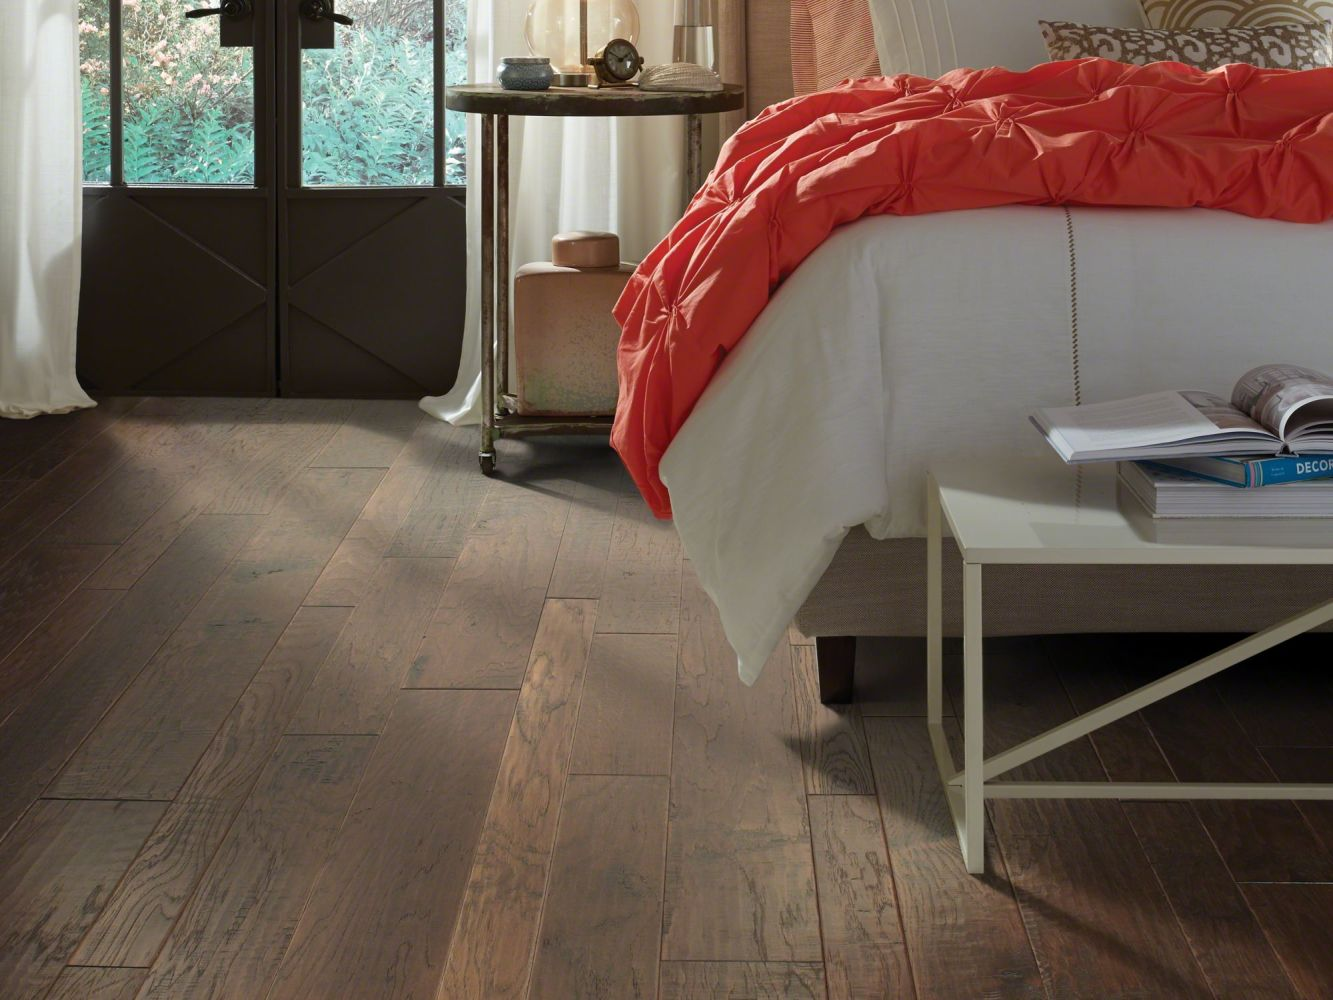 Shaw Floors Home Fn Gold Hardwood Leesburg 2 – Mixed Weathered Saddle 00941_HW619